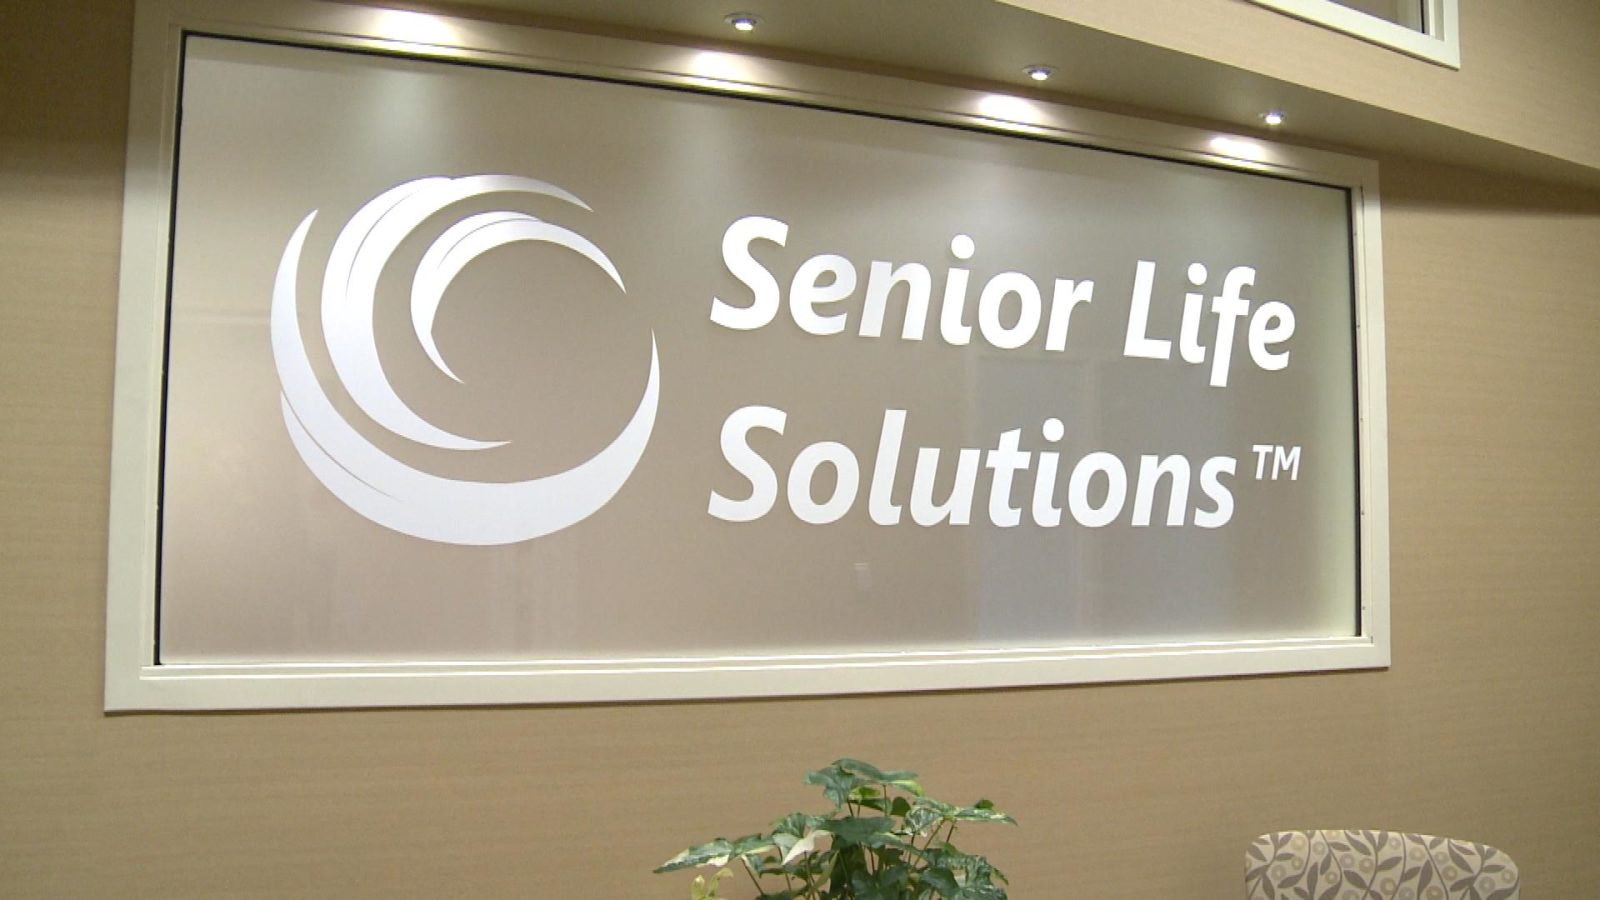 Senior Life Solutions branches out